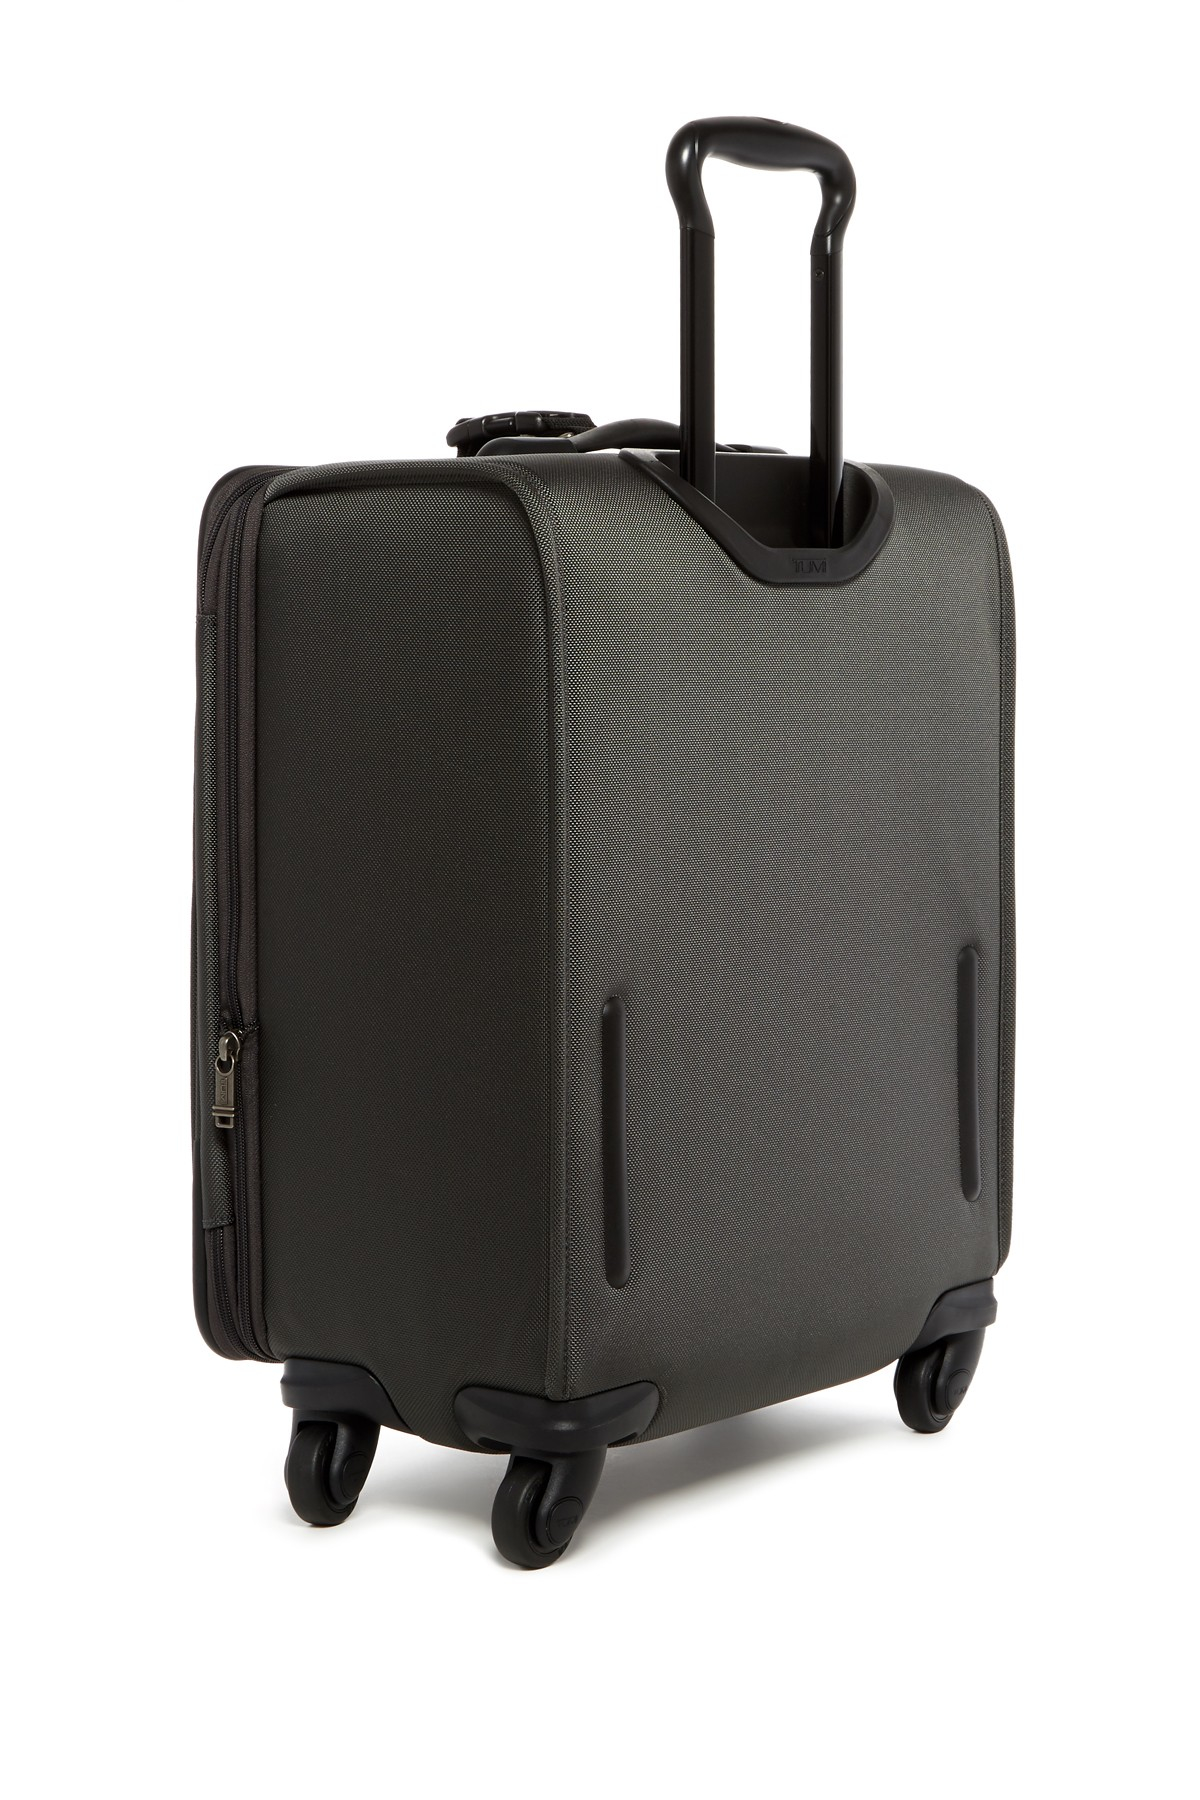 Tumi Continental 21 Quot Expandable 4 Wheel Nylon Carry On In